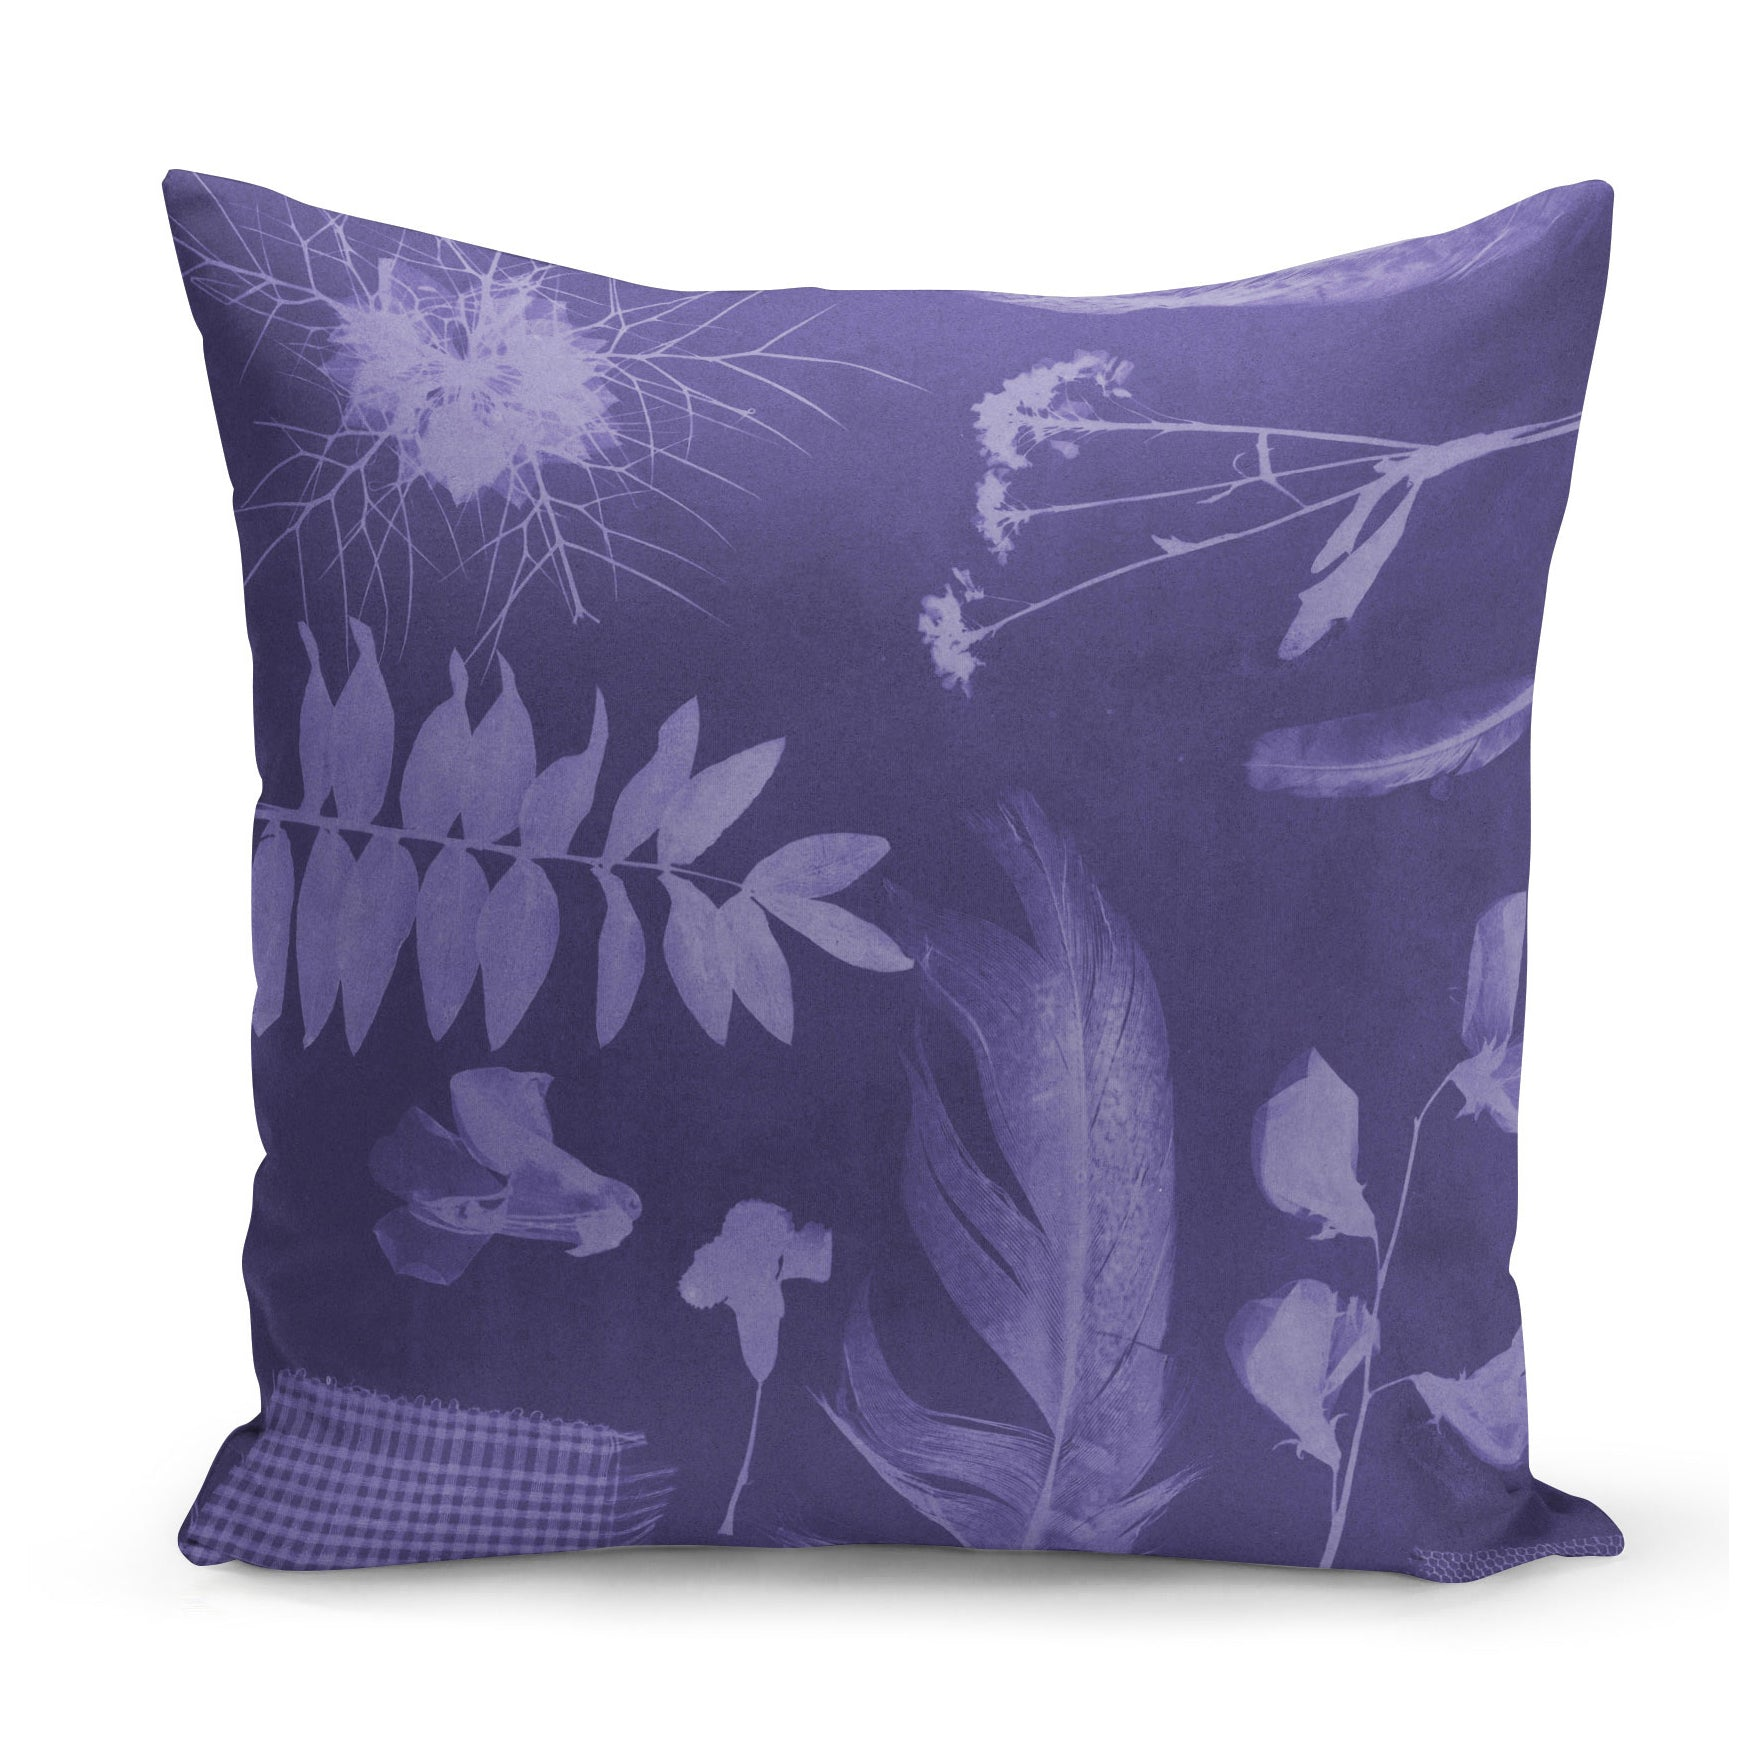 purple cushion with x-ray style images of feathers, flowers and plants